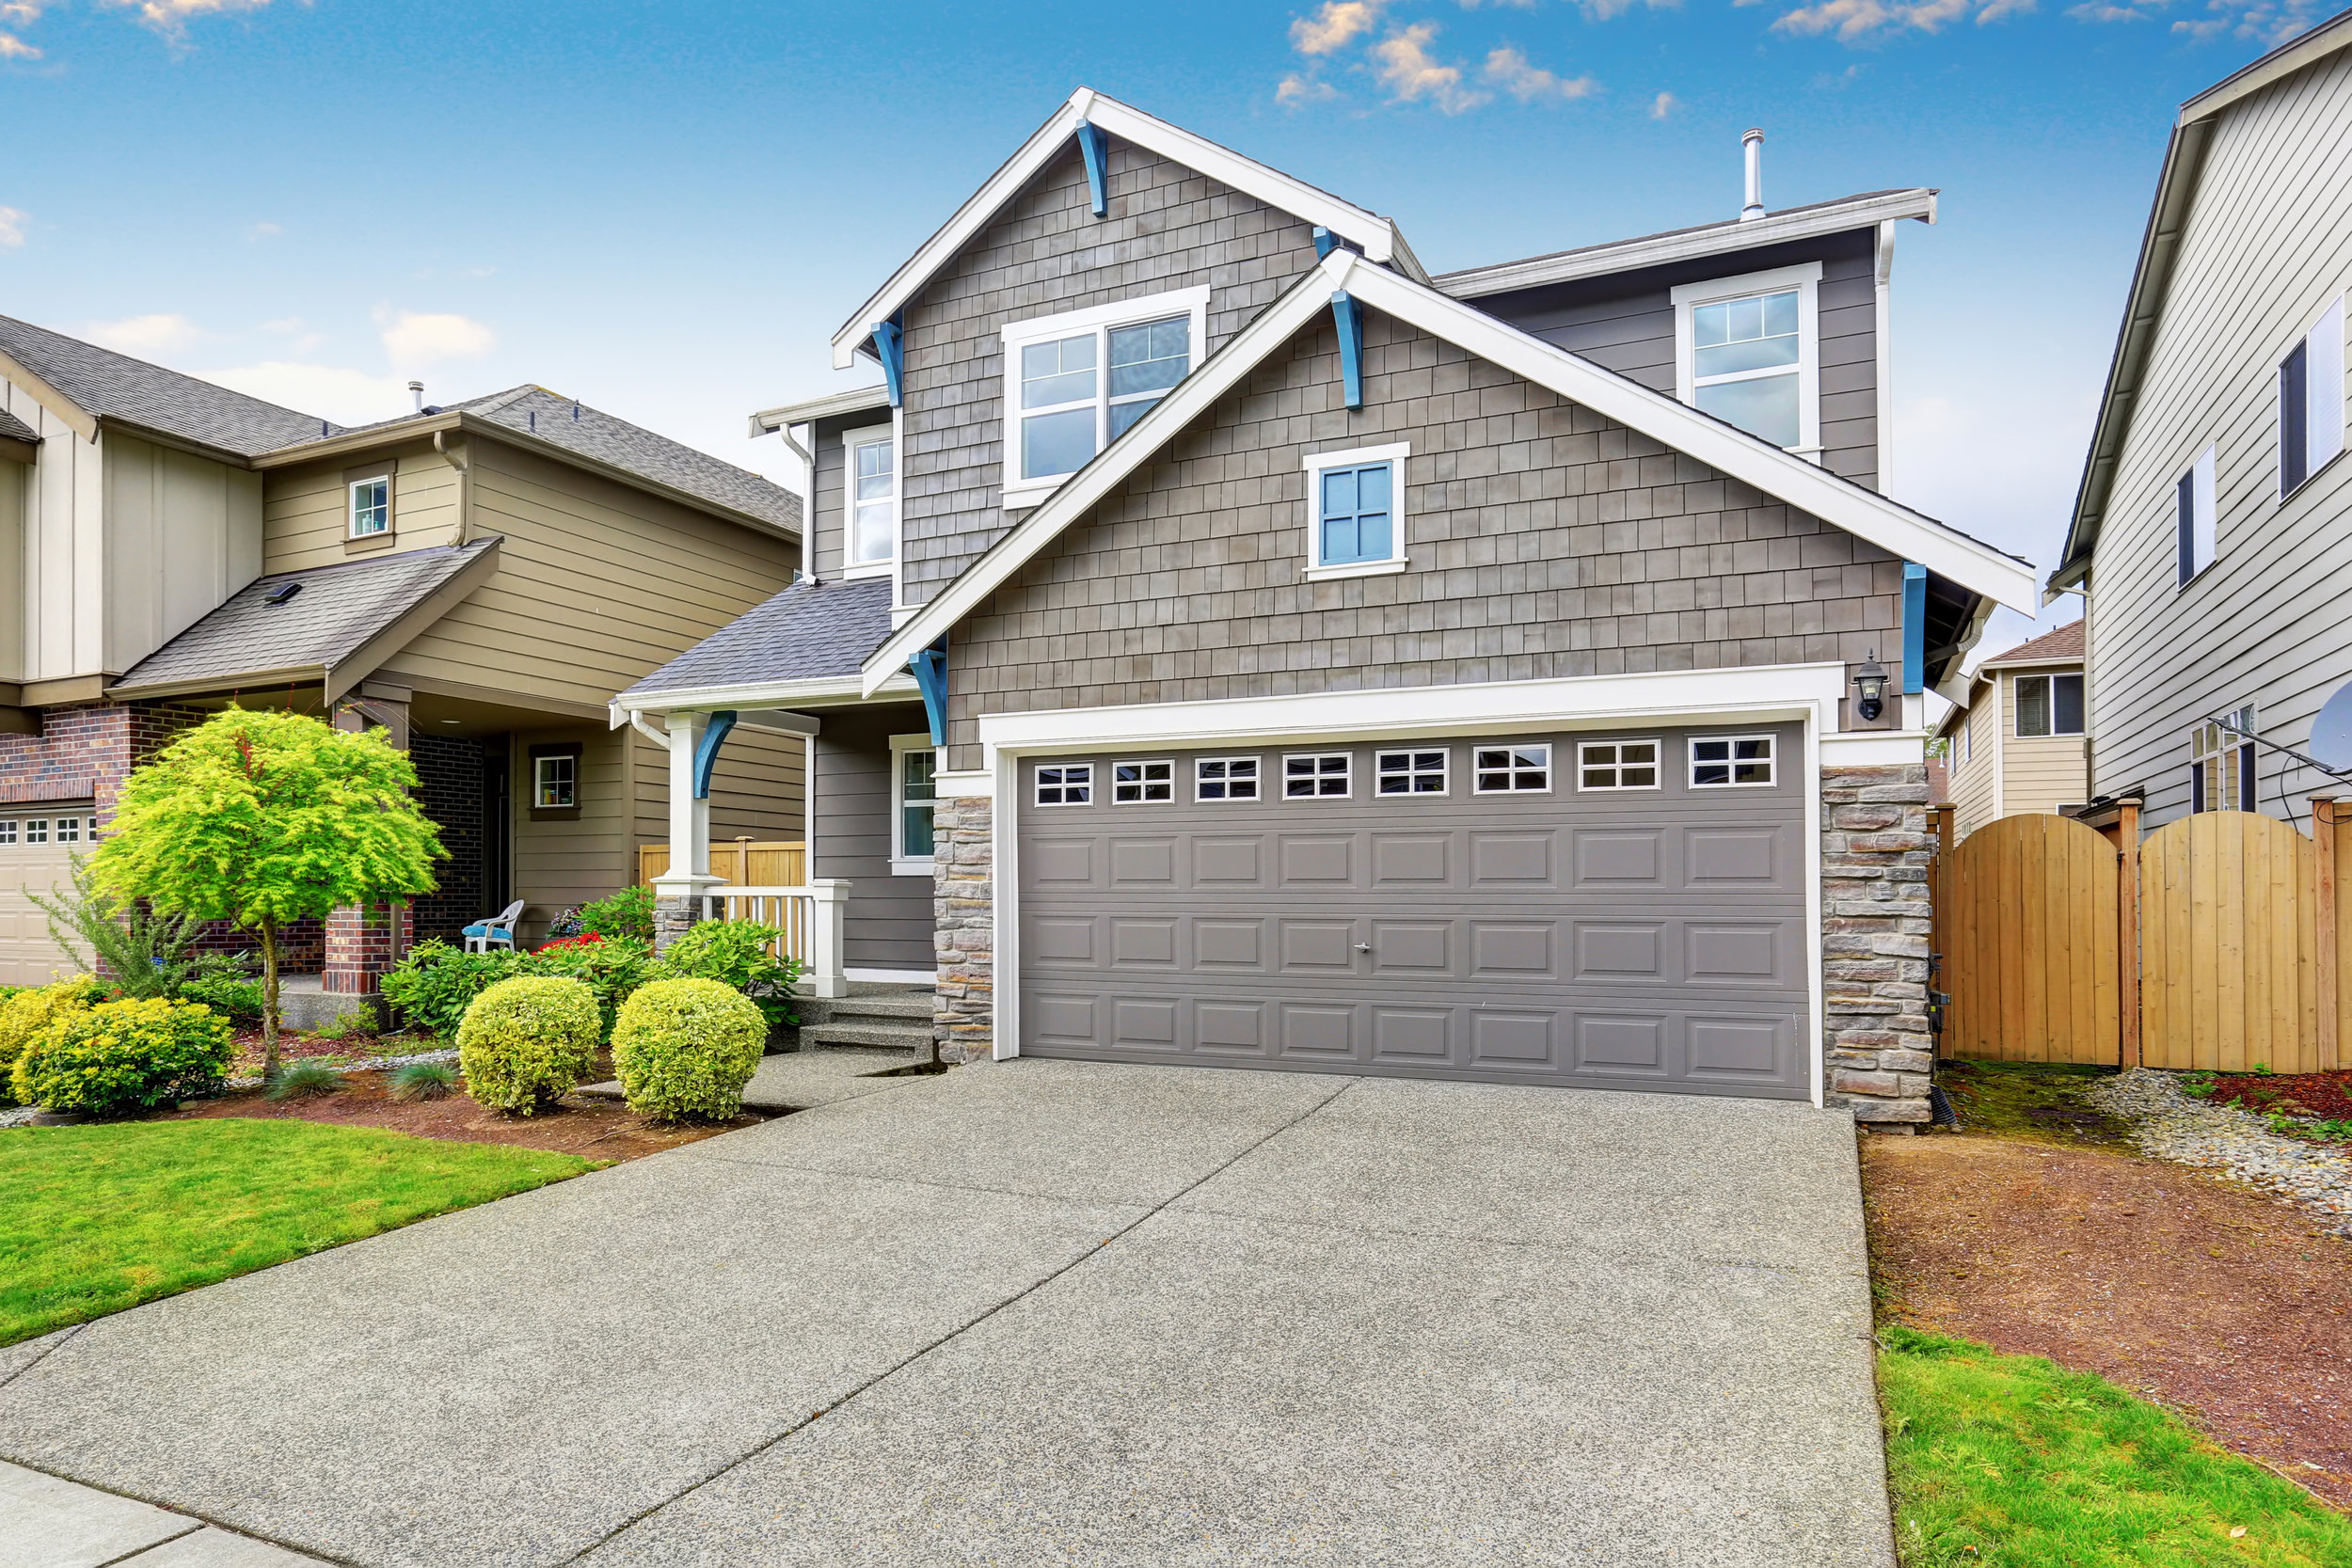 bigstock-Nice-Curb-Appeal-Of-Two-Level--138618230.jpg